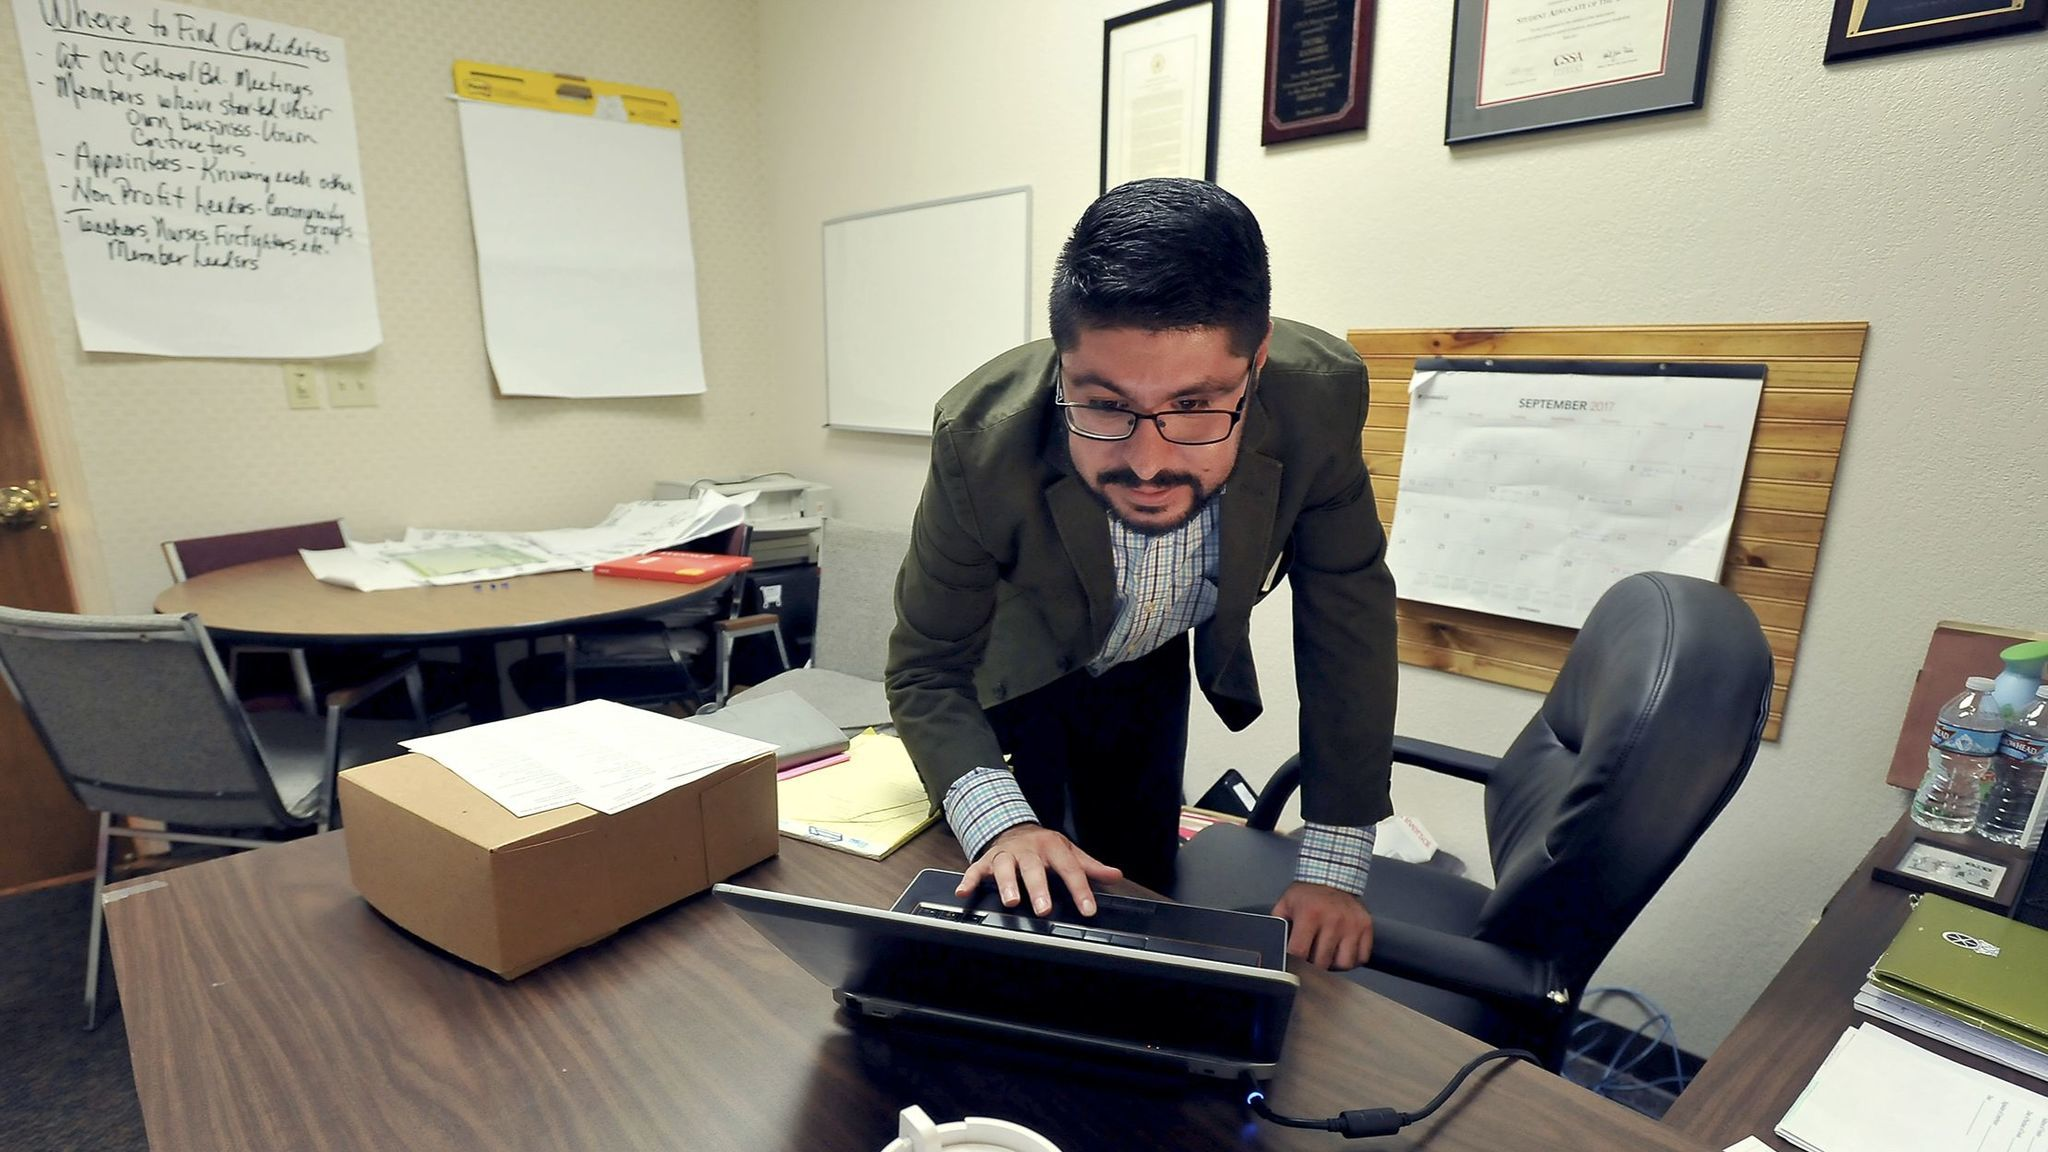 Pedro Ramirez, 28, checks his appointments while working in his office as a Central Valley field organizer for the California Labor Federation in Fresno.